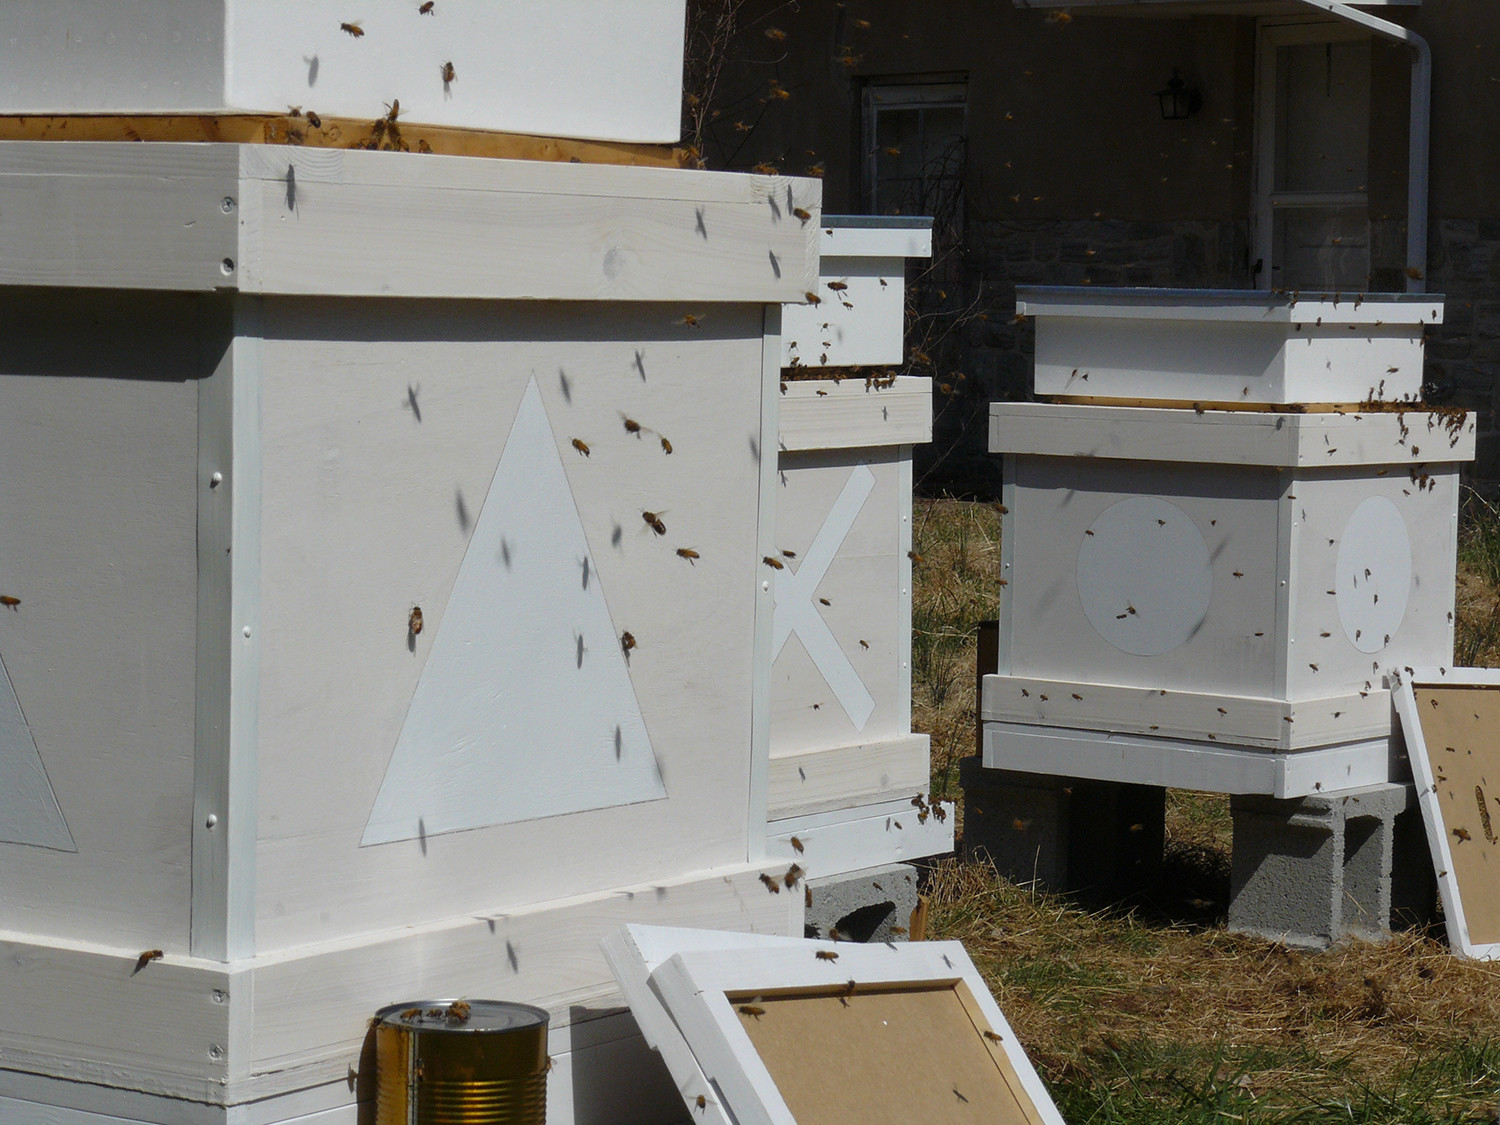 Programmed Hives (works in progress)